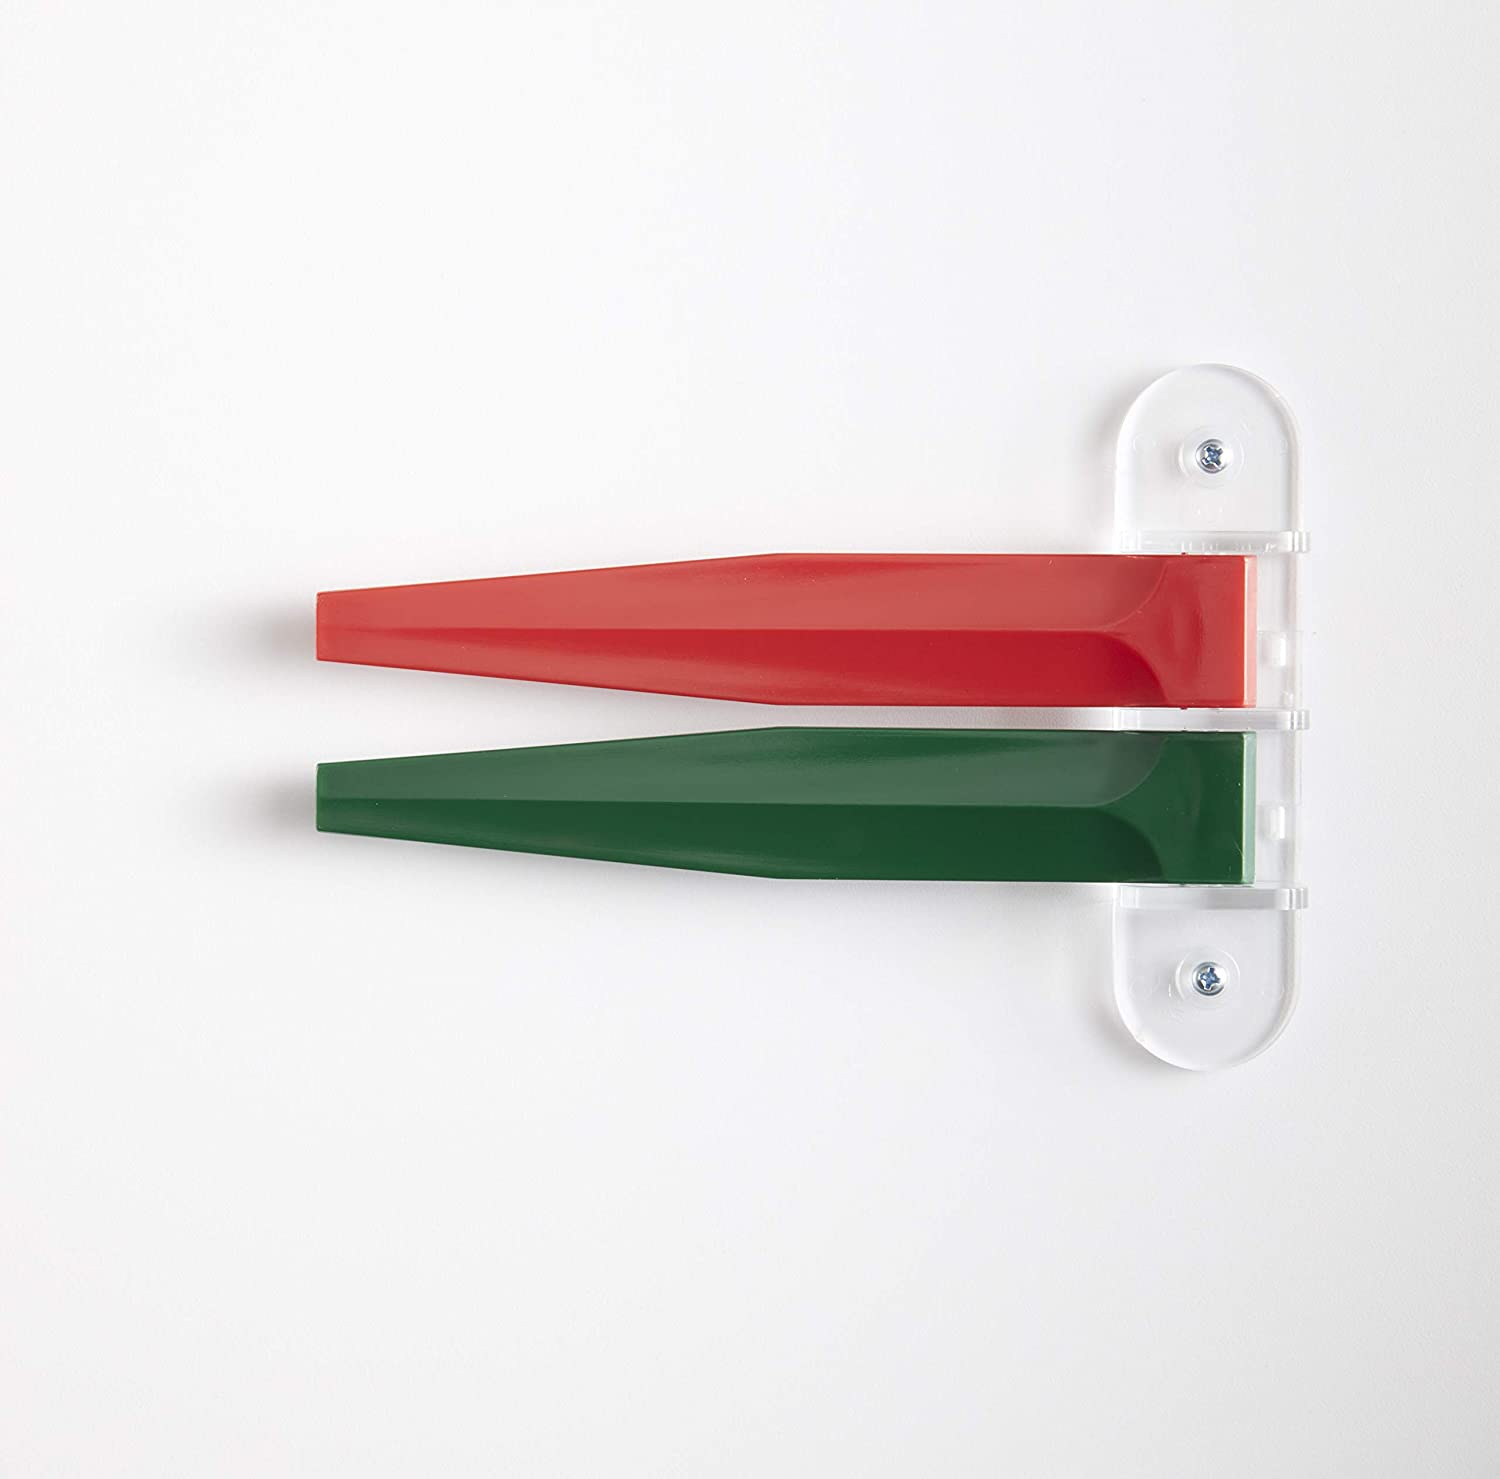 Exam Room Signals - Kull Industries - Medical Door Flags for Hospitals, Doctors Offices, Clinics (Primary Colors, 2 Flag System, 7